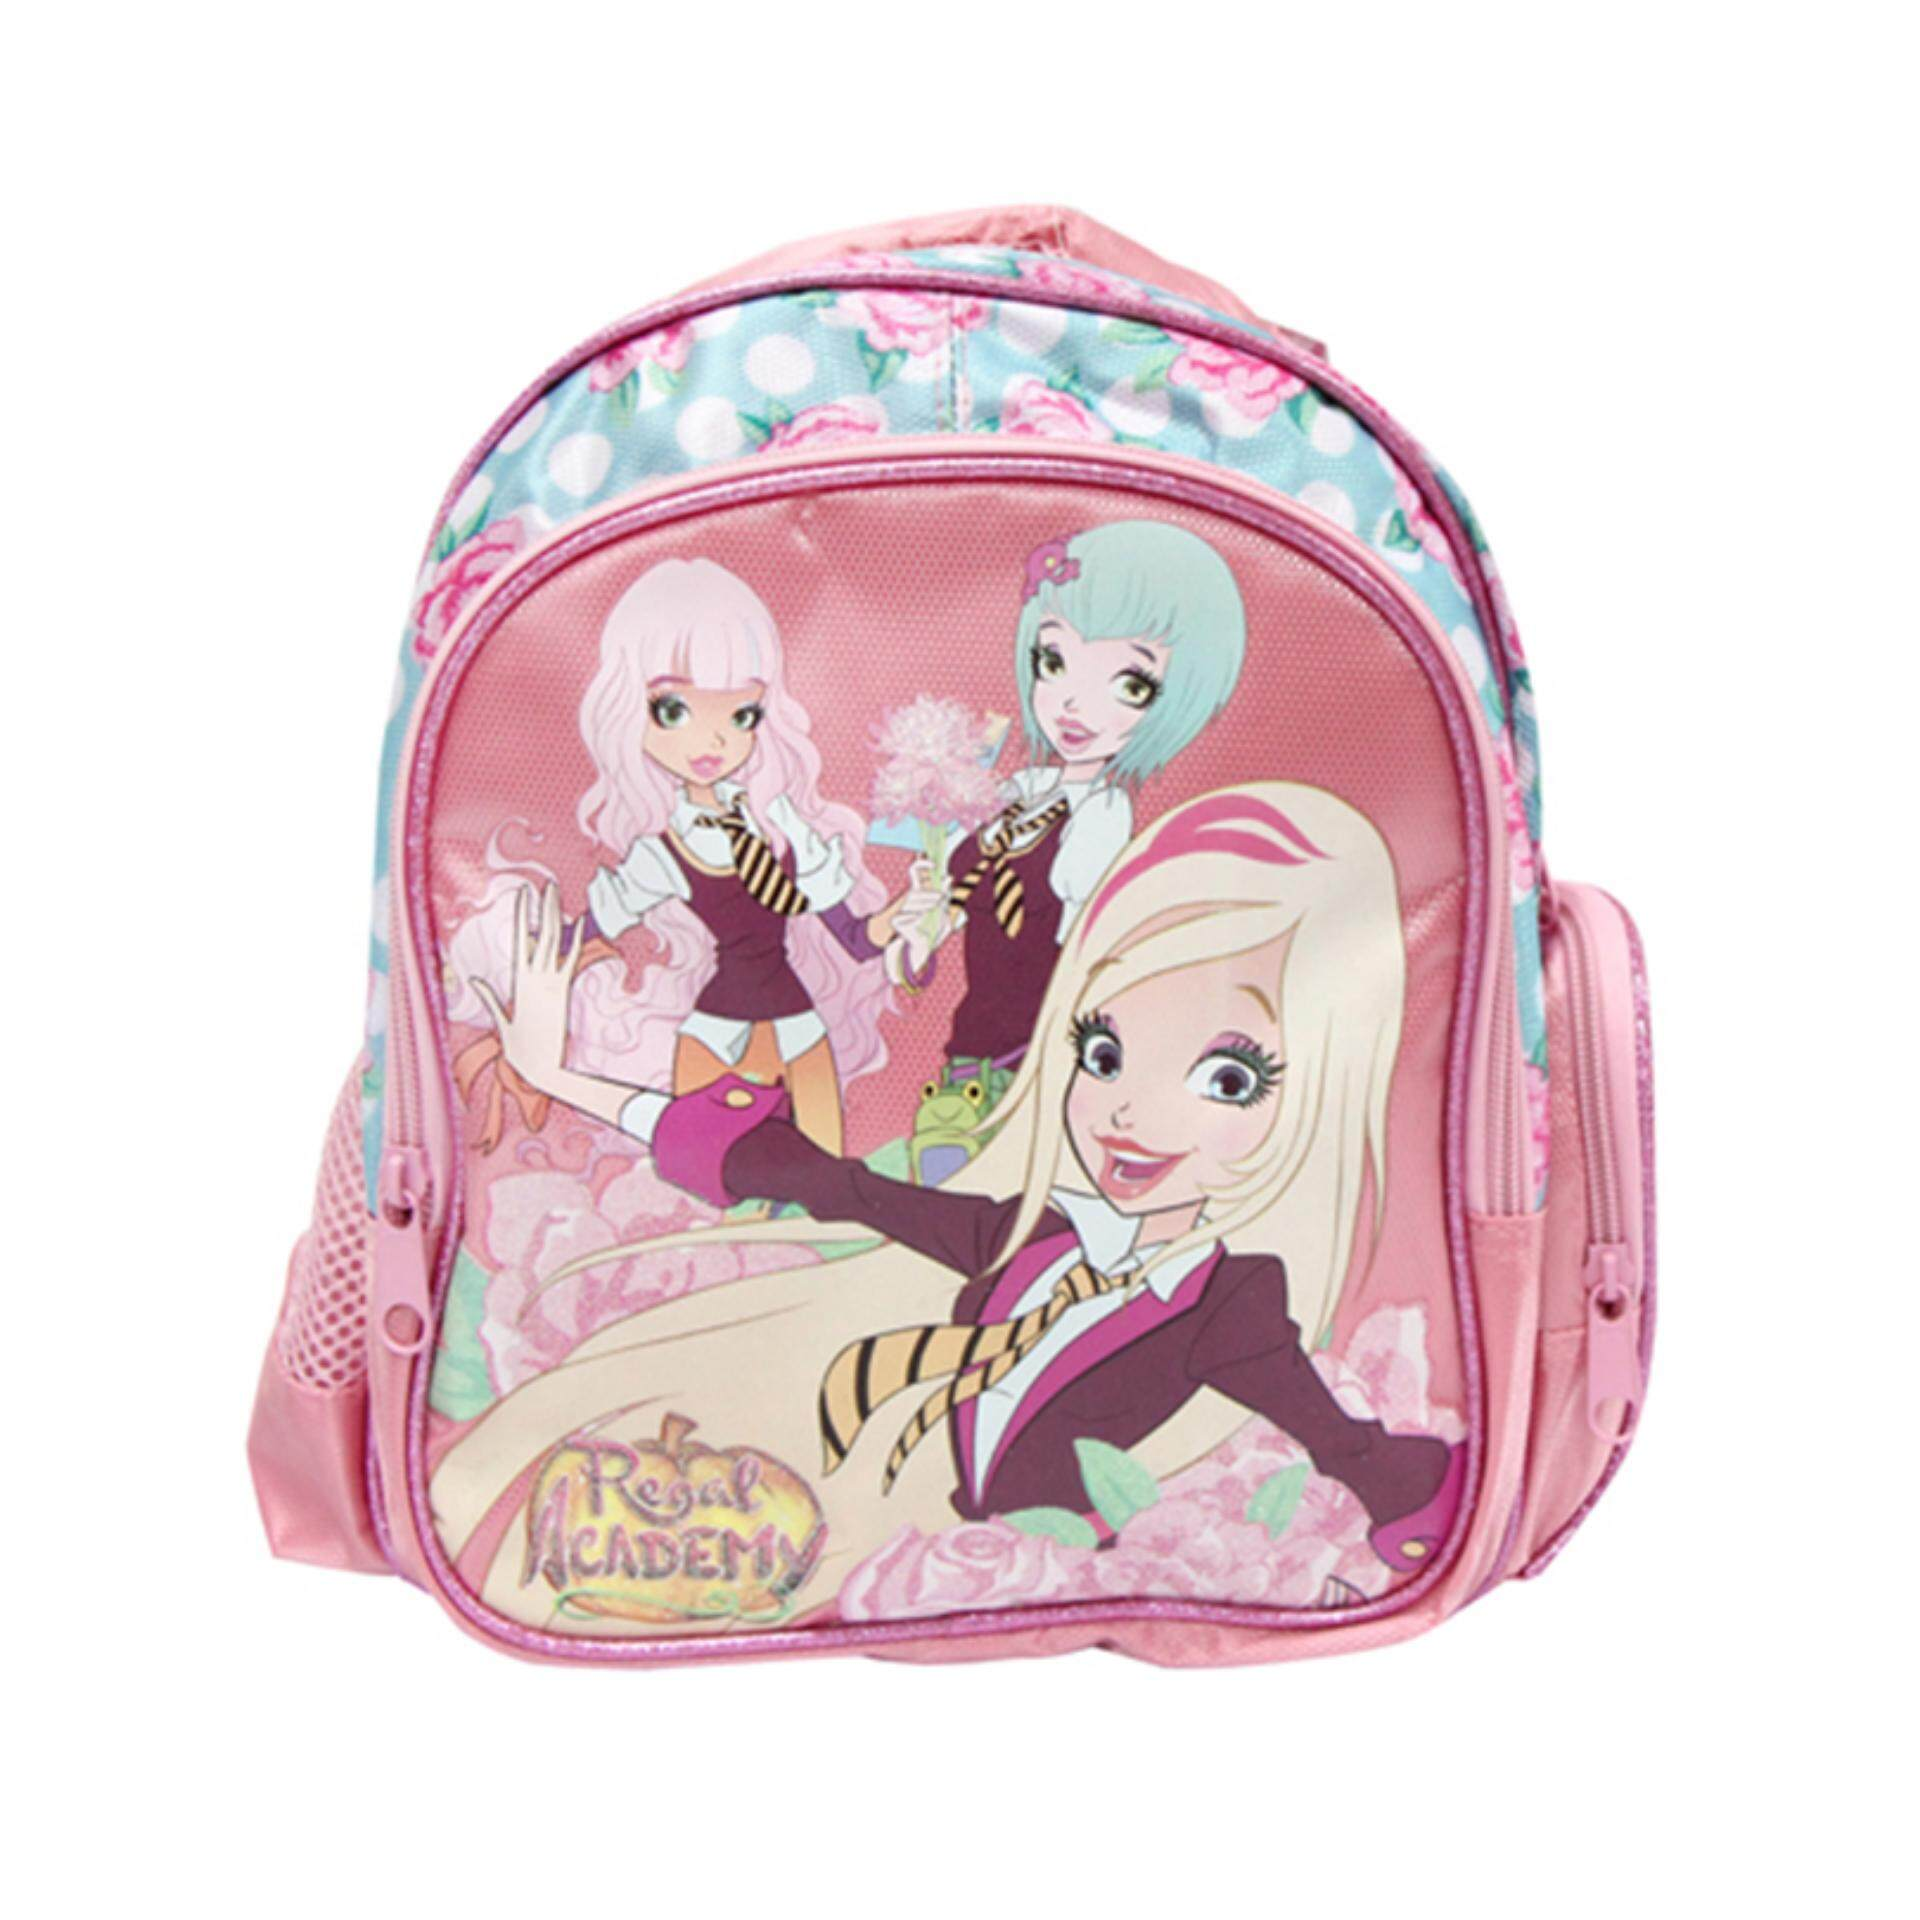 Regal Academy Backpack School Bag 12 Inches - Pink Colour